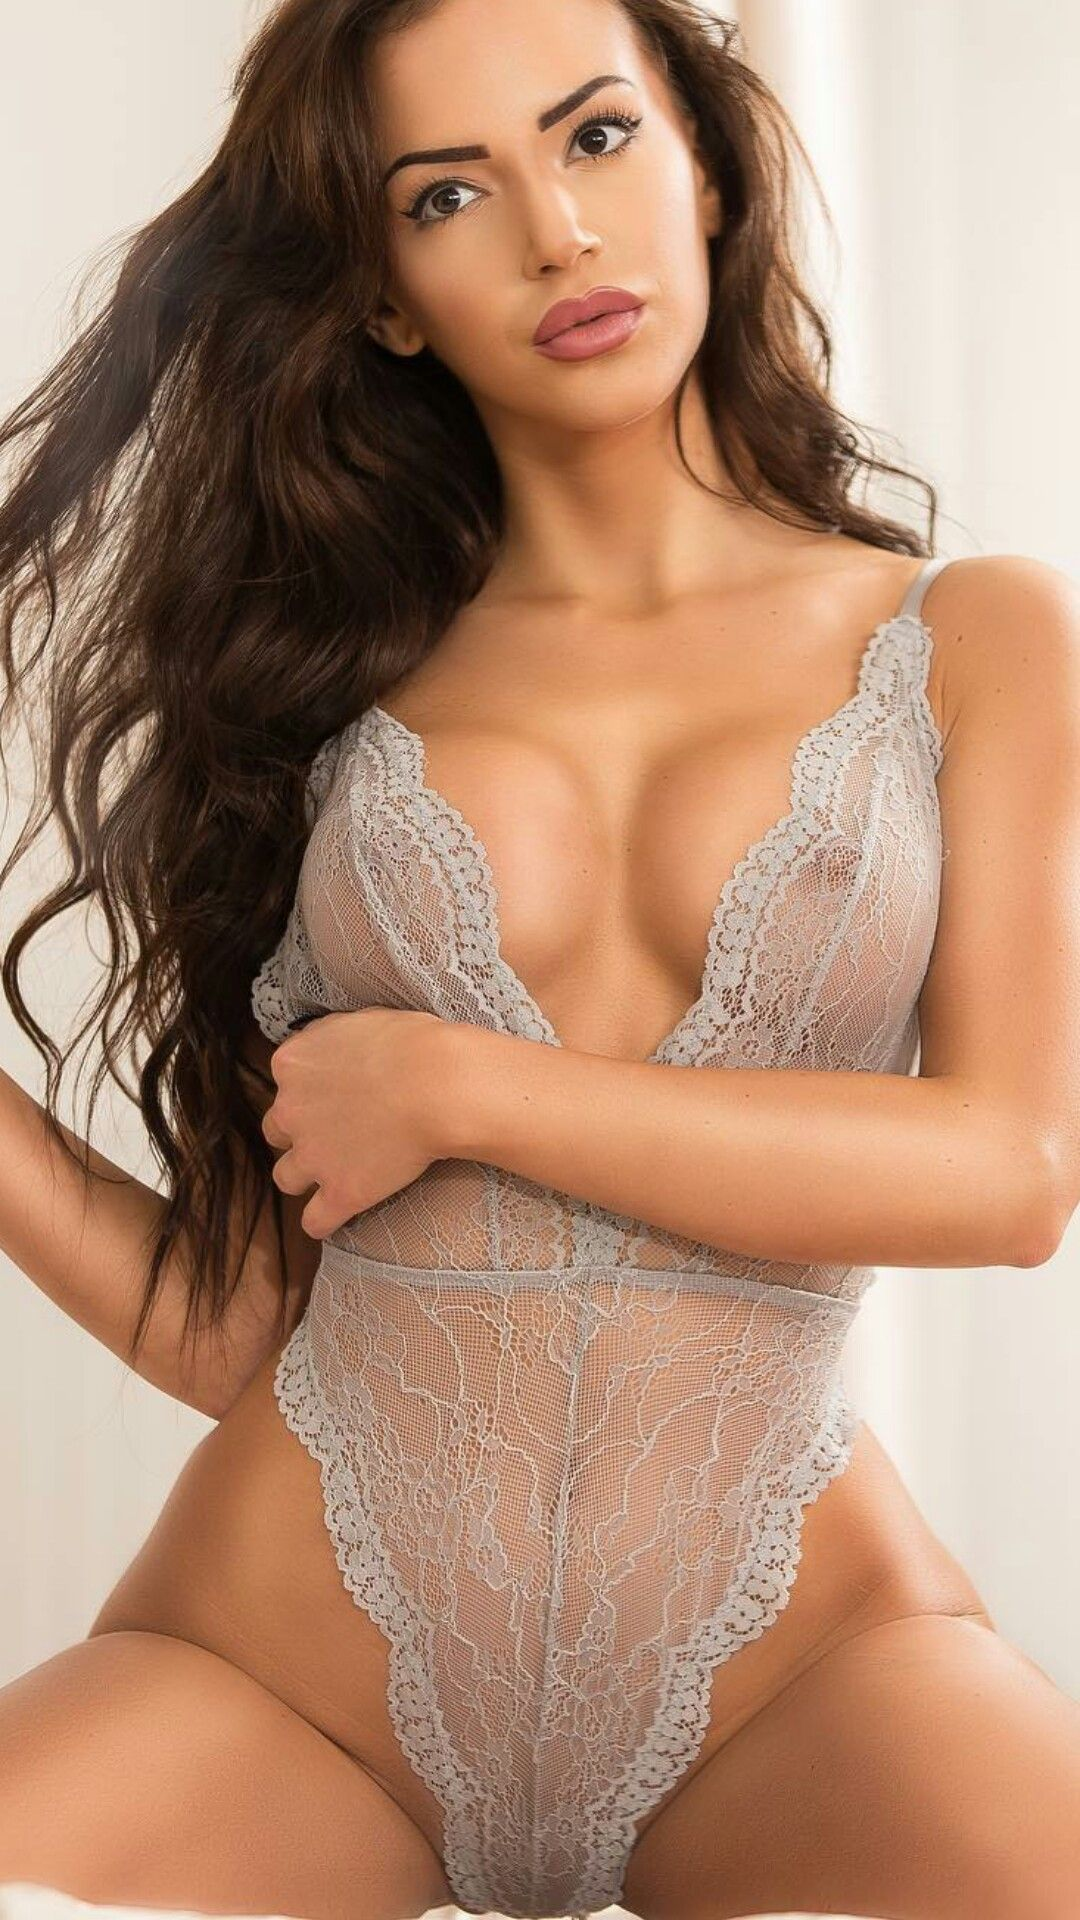 Pin by Bubba24 on ♥ Sheer City | Pinterest | Lingerie, Hot ...